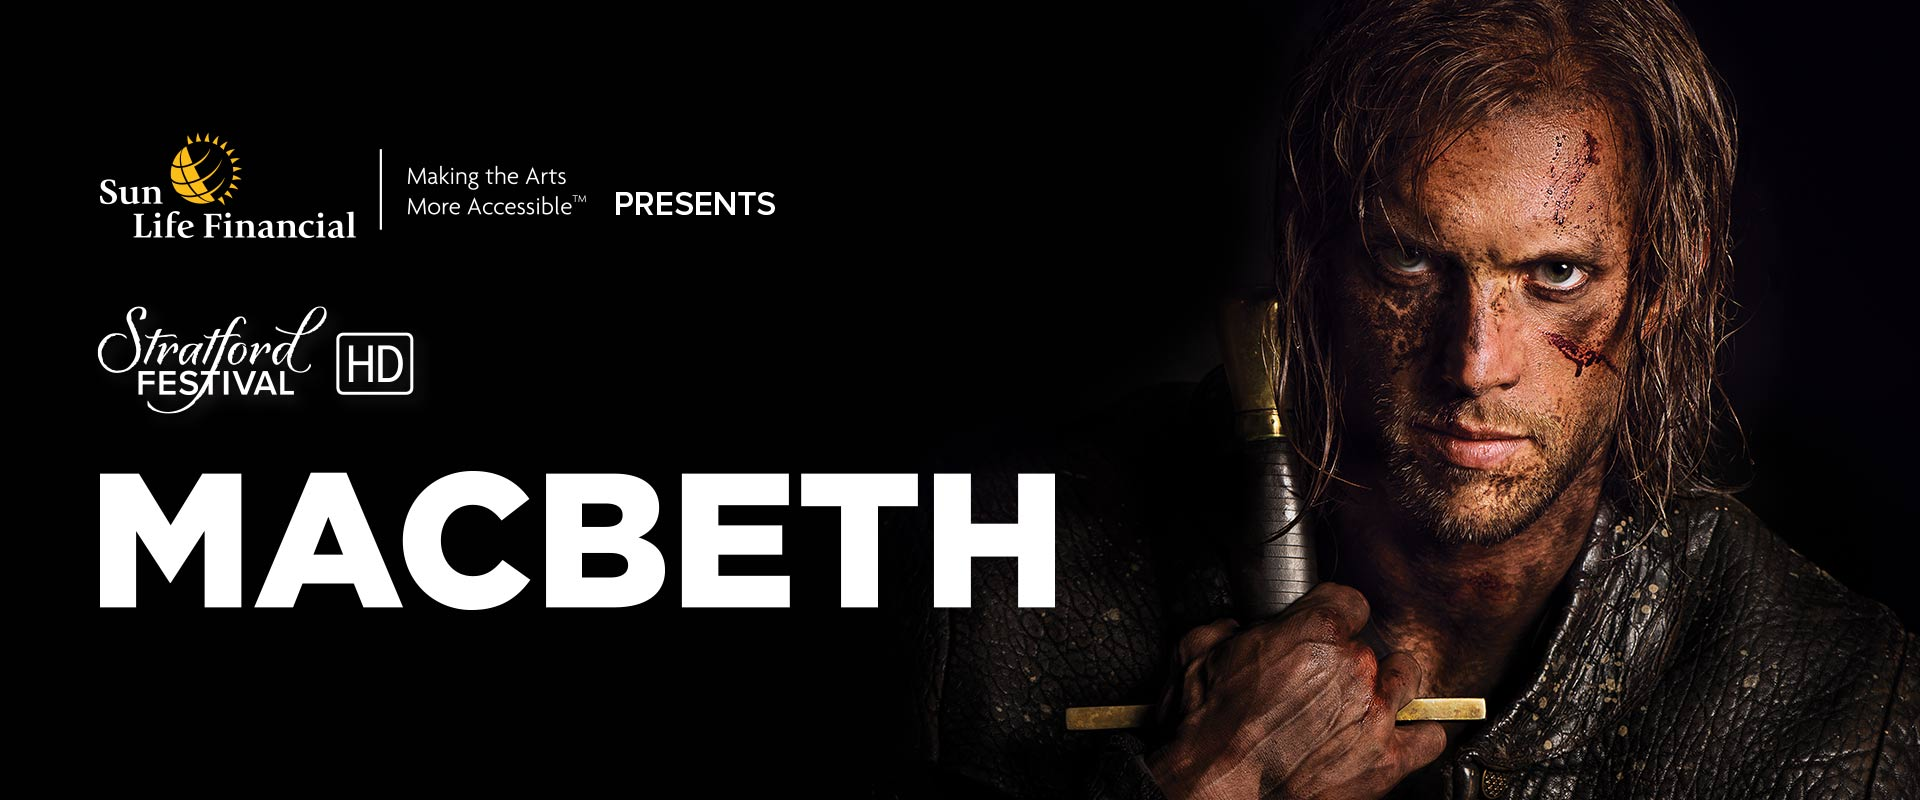 Performance Plus Macbeth Banner